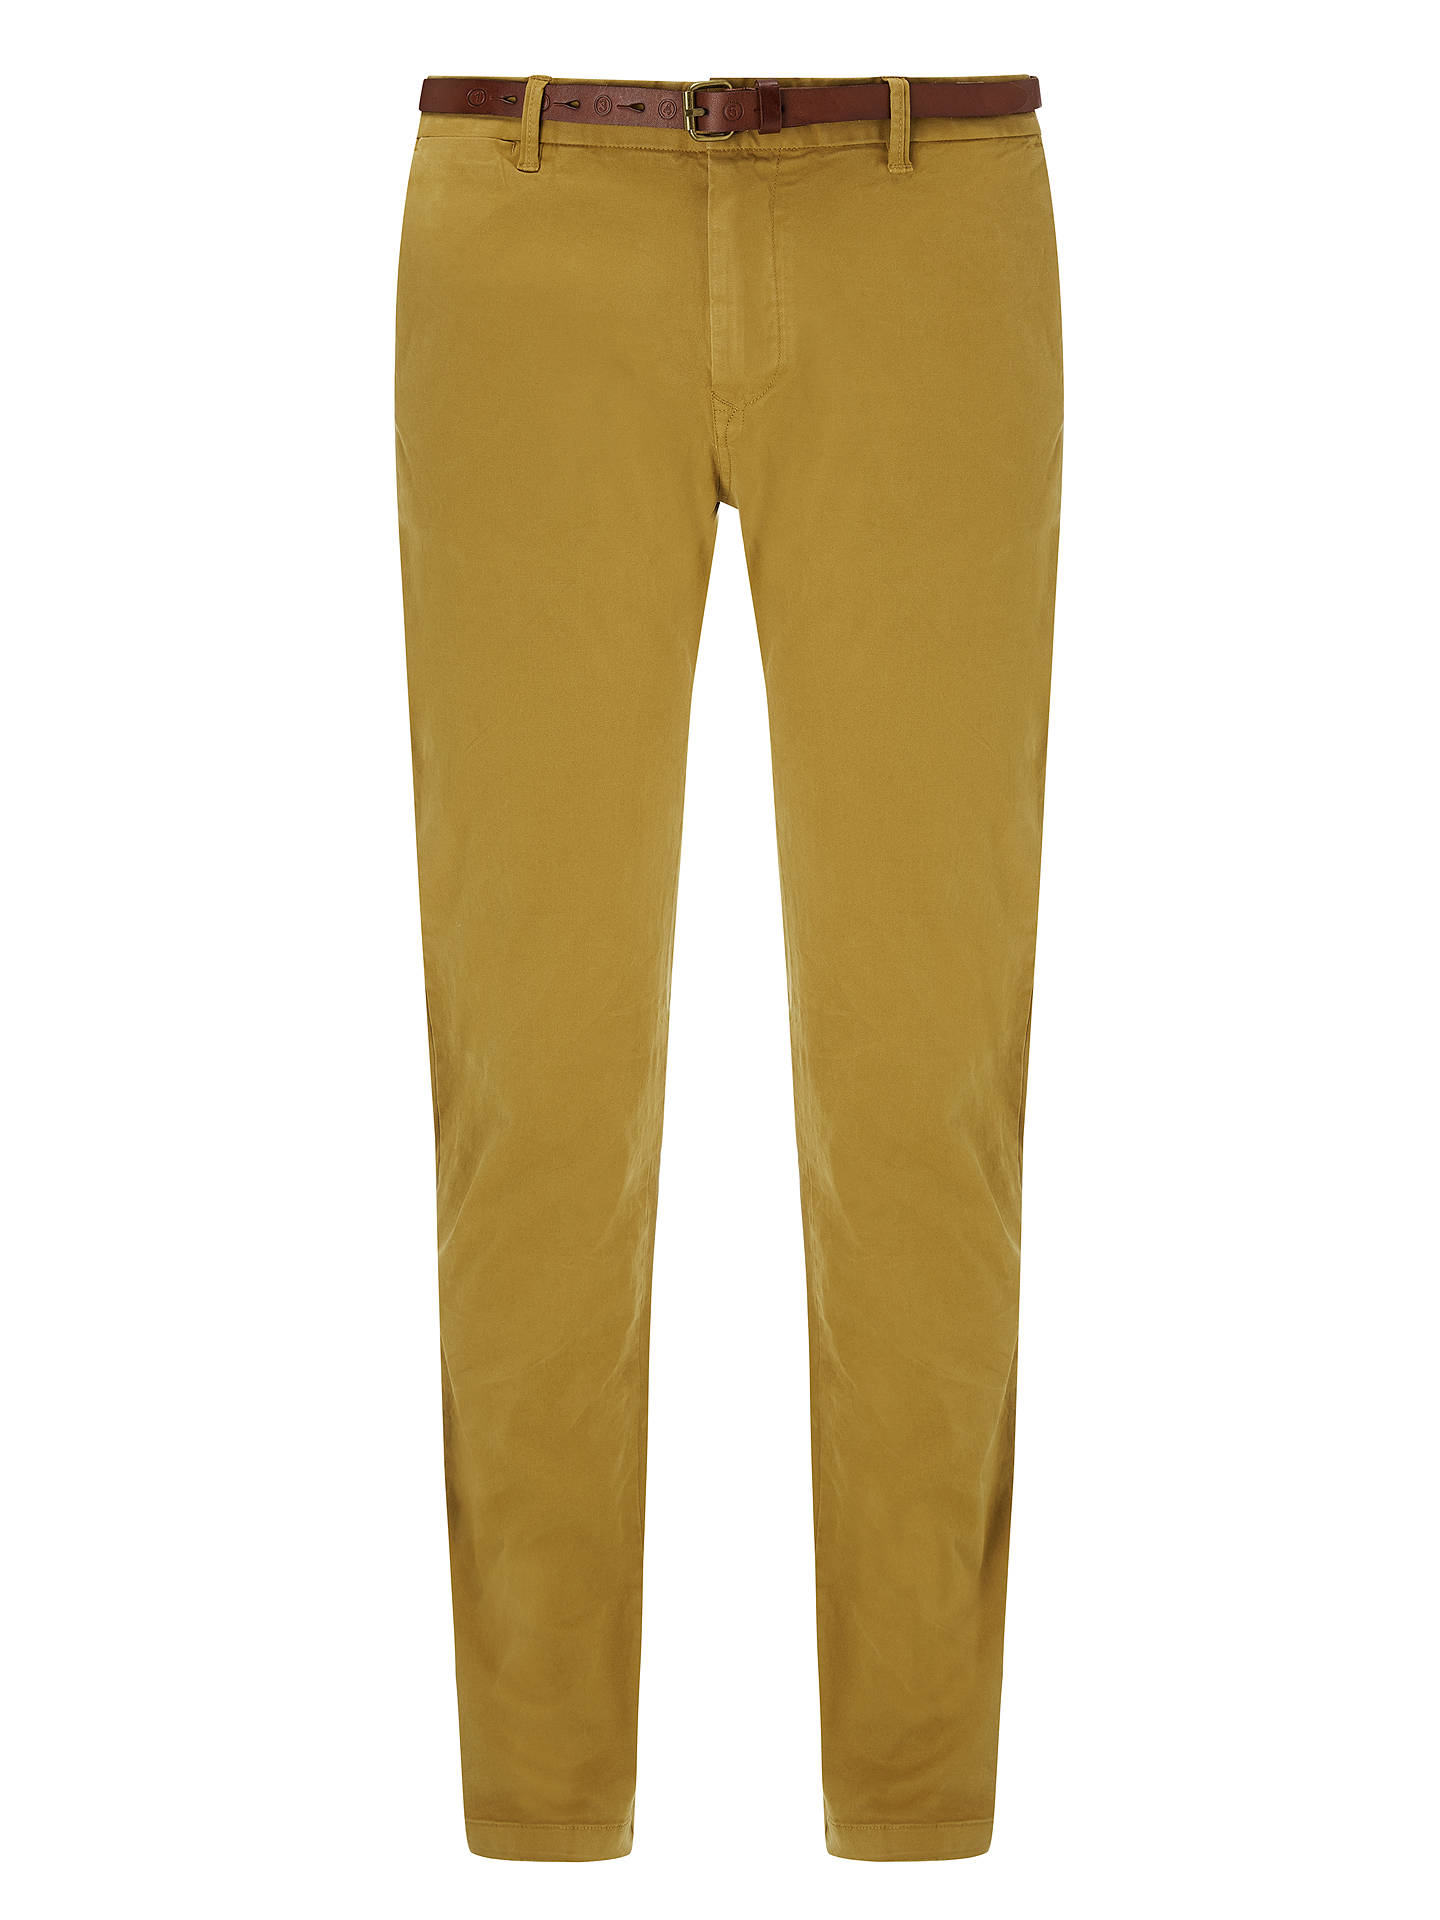 BuyScotch & Soda Slim Fit Cotton Chinos, Walnut, 30R Online at johnlewis.com